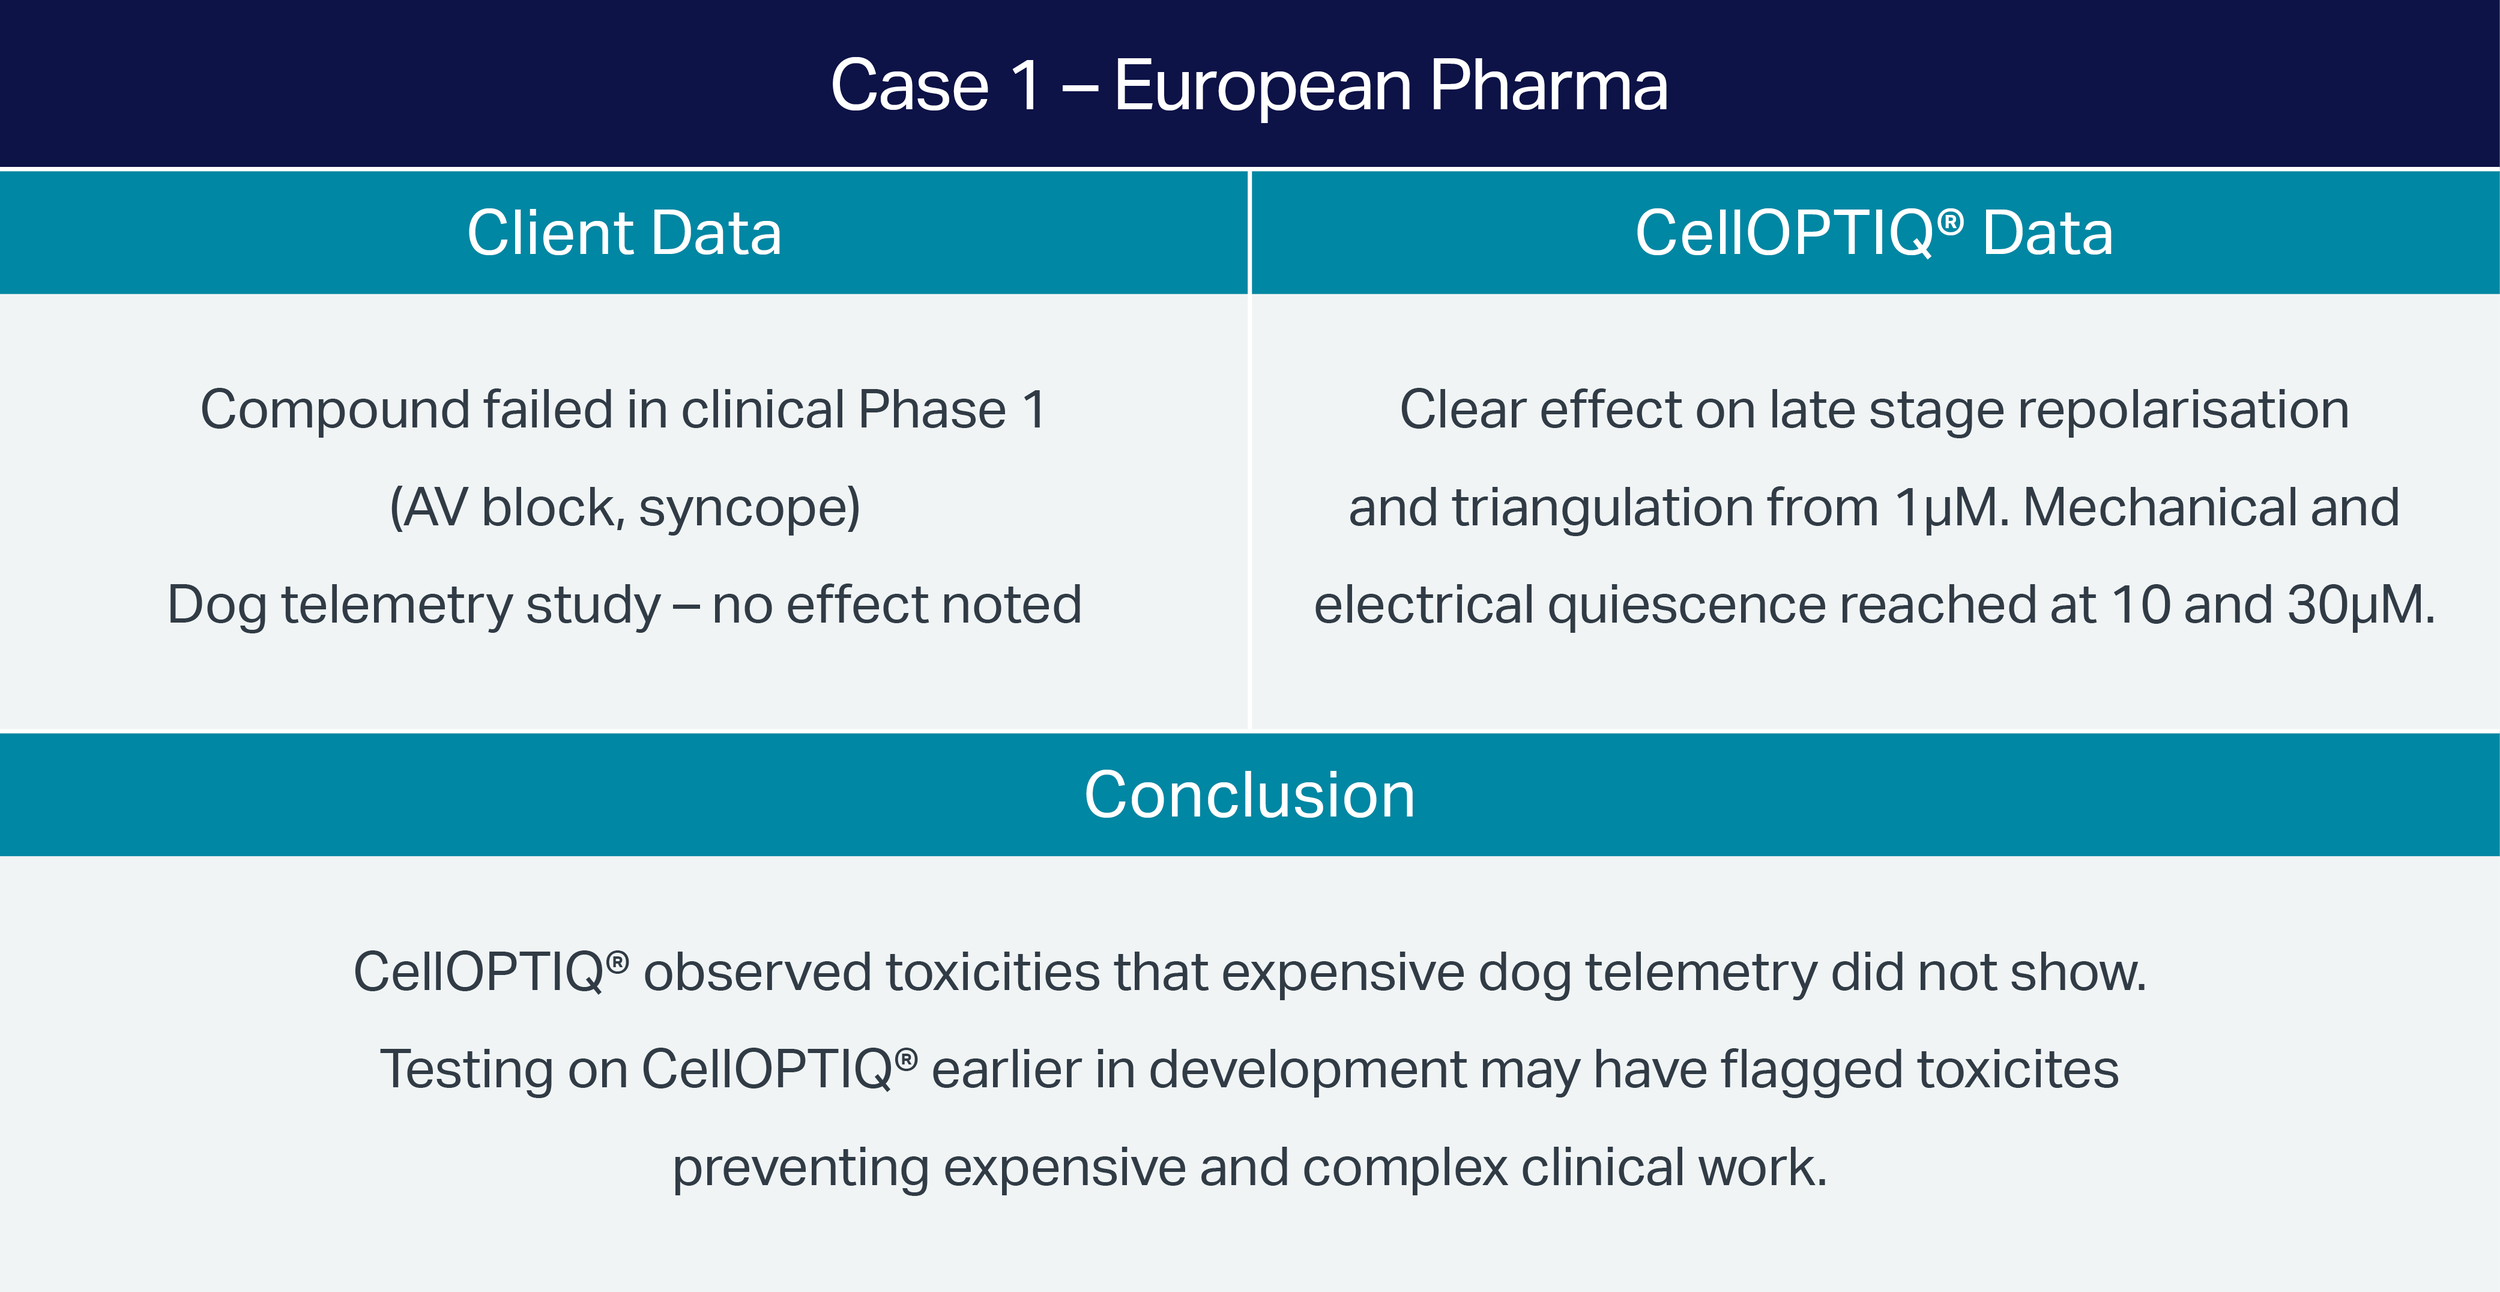 Case-1-Euro-Pharma-Assay-Comparison-2.png